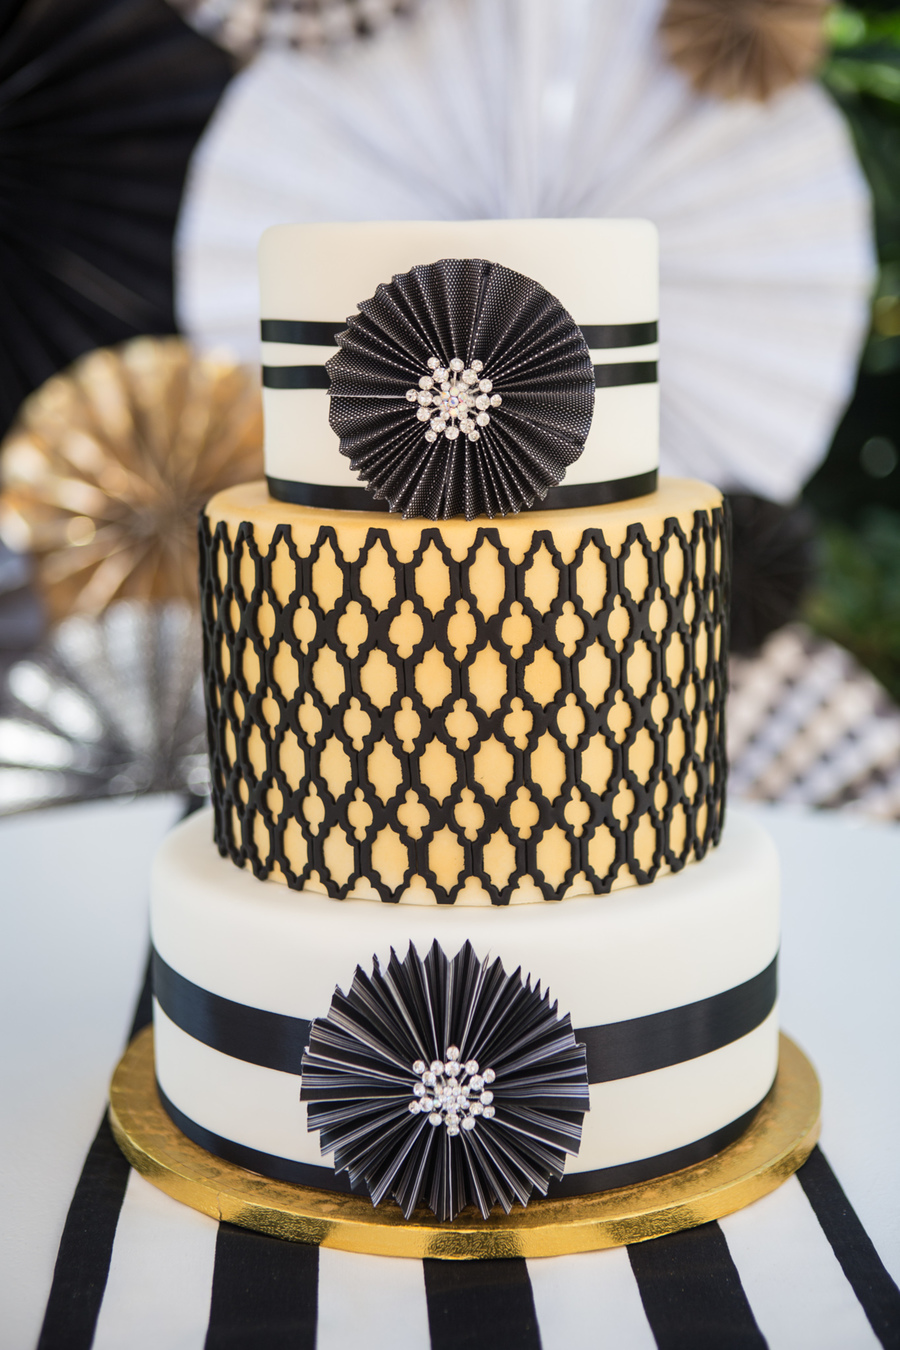 Black White And Gold Wedding Cake Incorporating The Paper Wheels And Some Bling With A Quatrefoil Center Tier on Cake Central